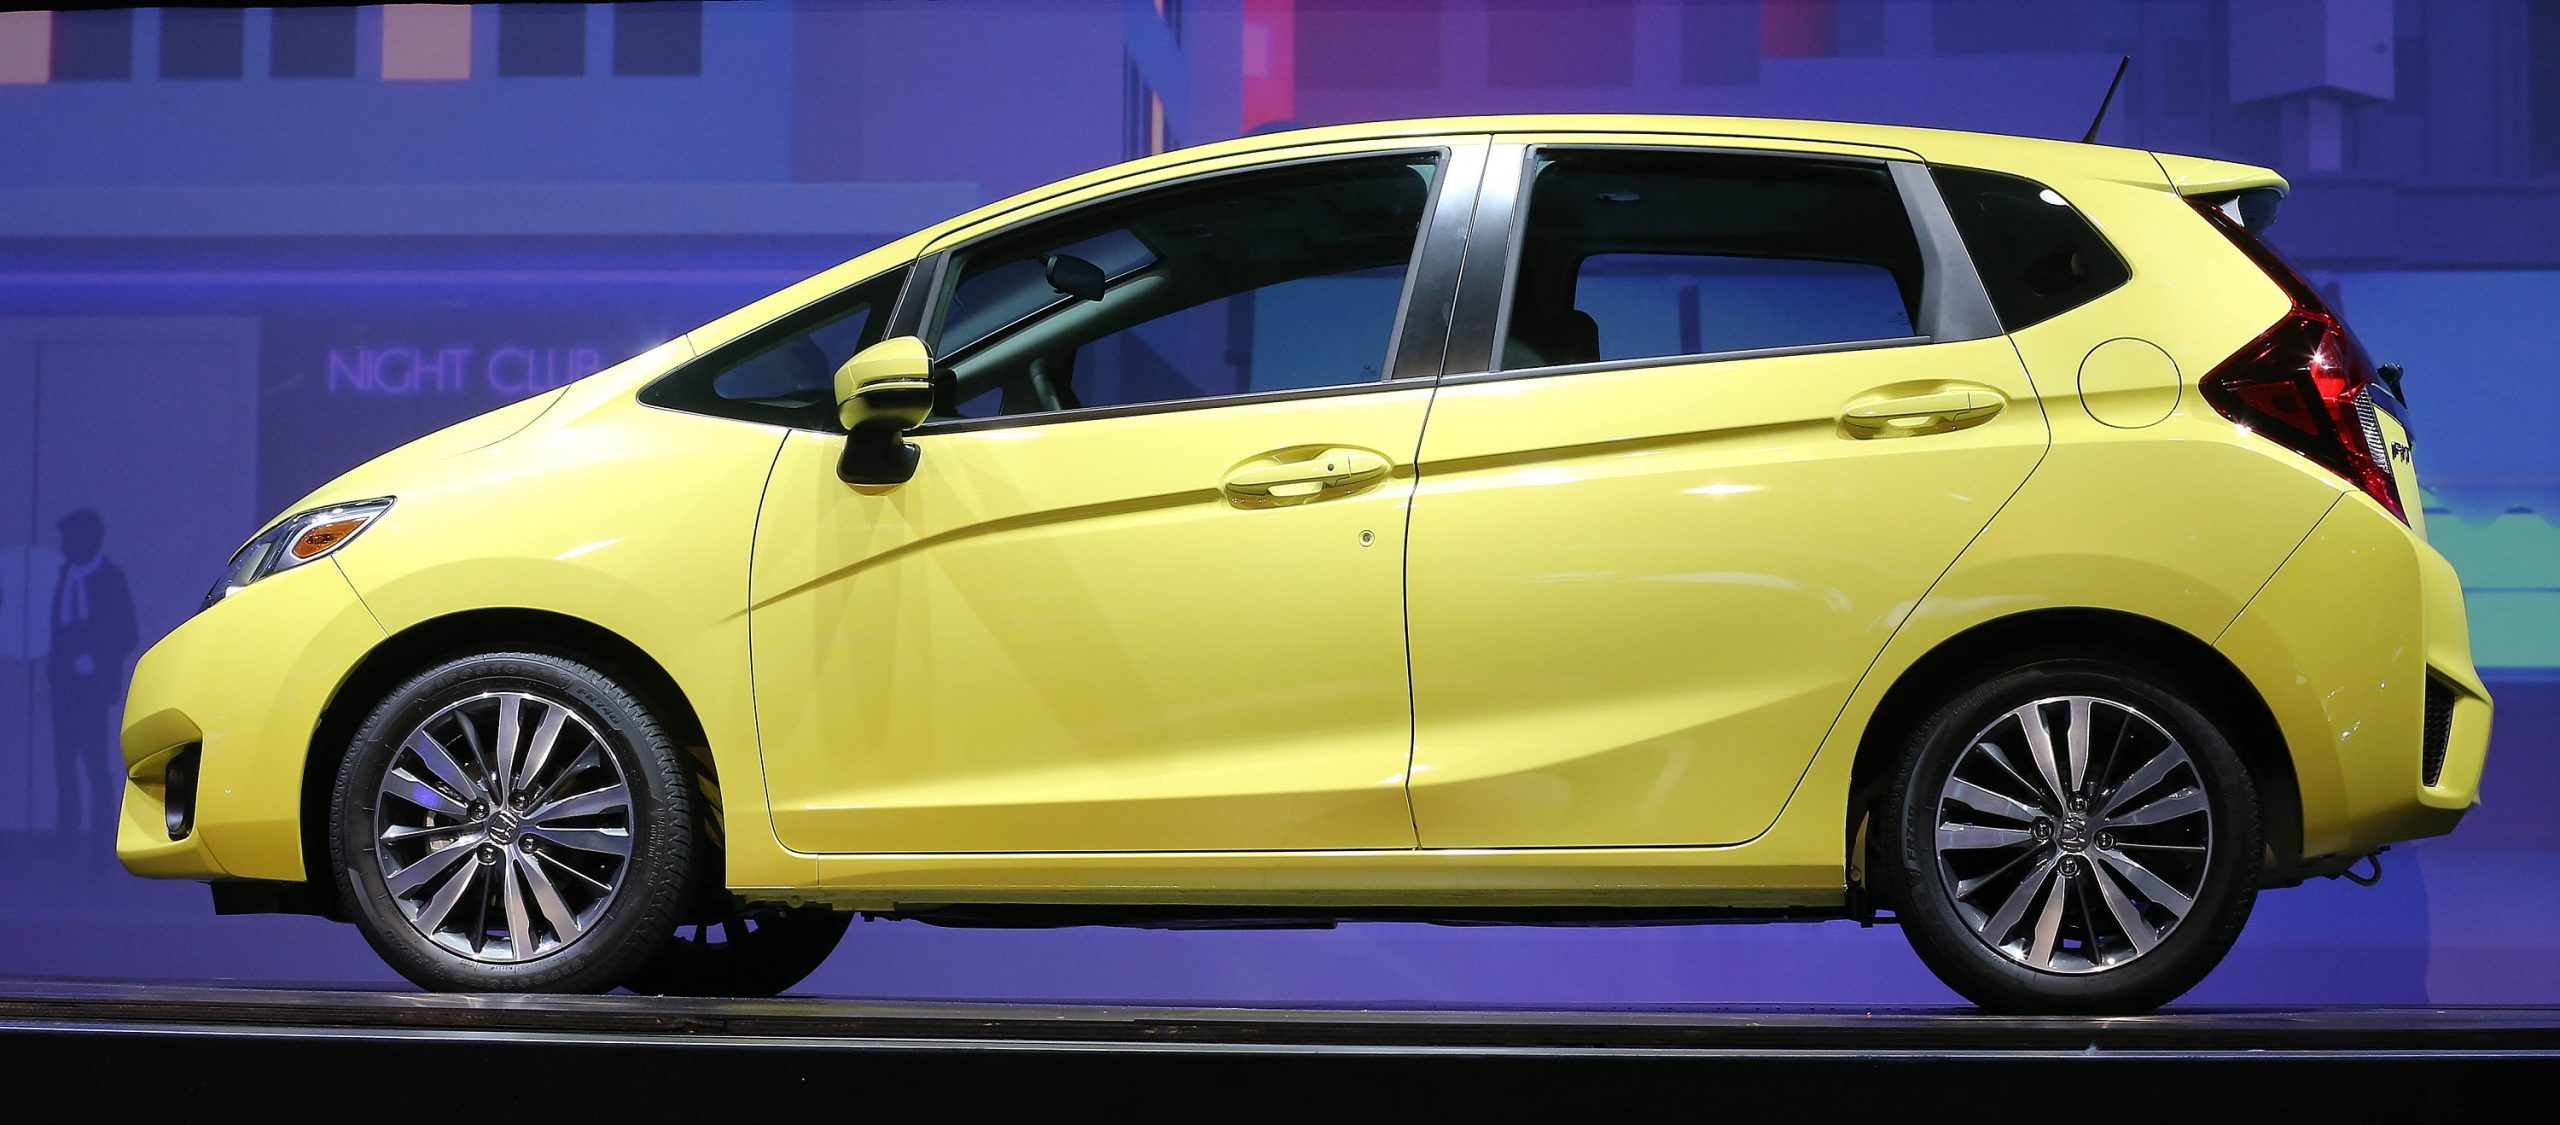 A yellow 2015 Honda Fit subcompact car shot in profile at an auto show